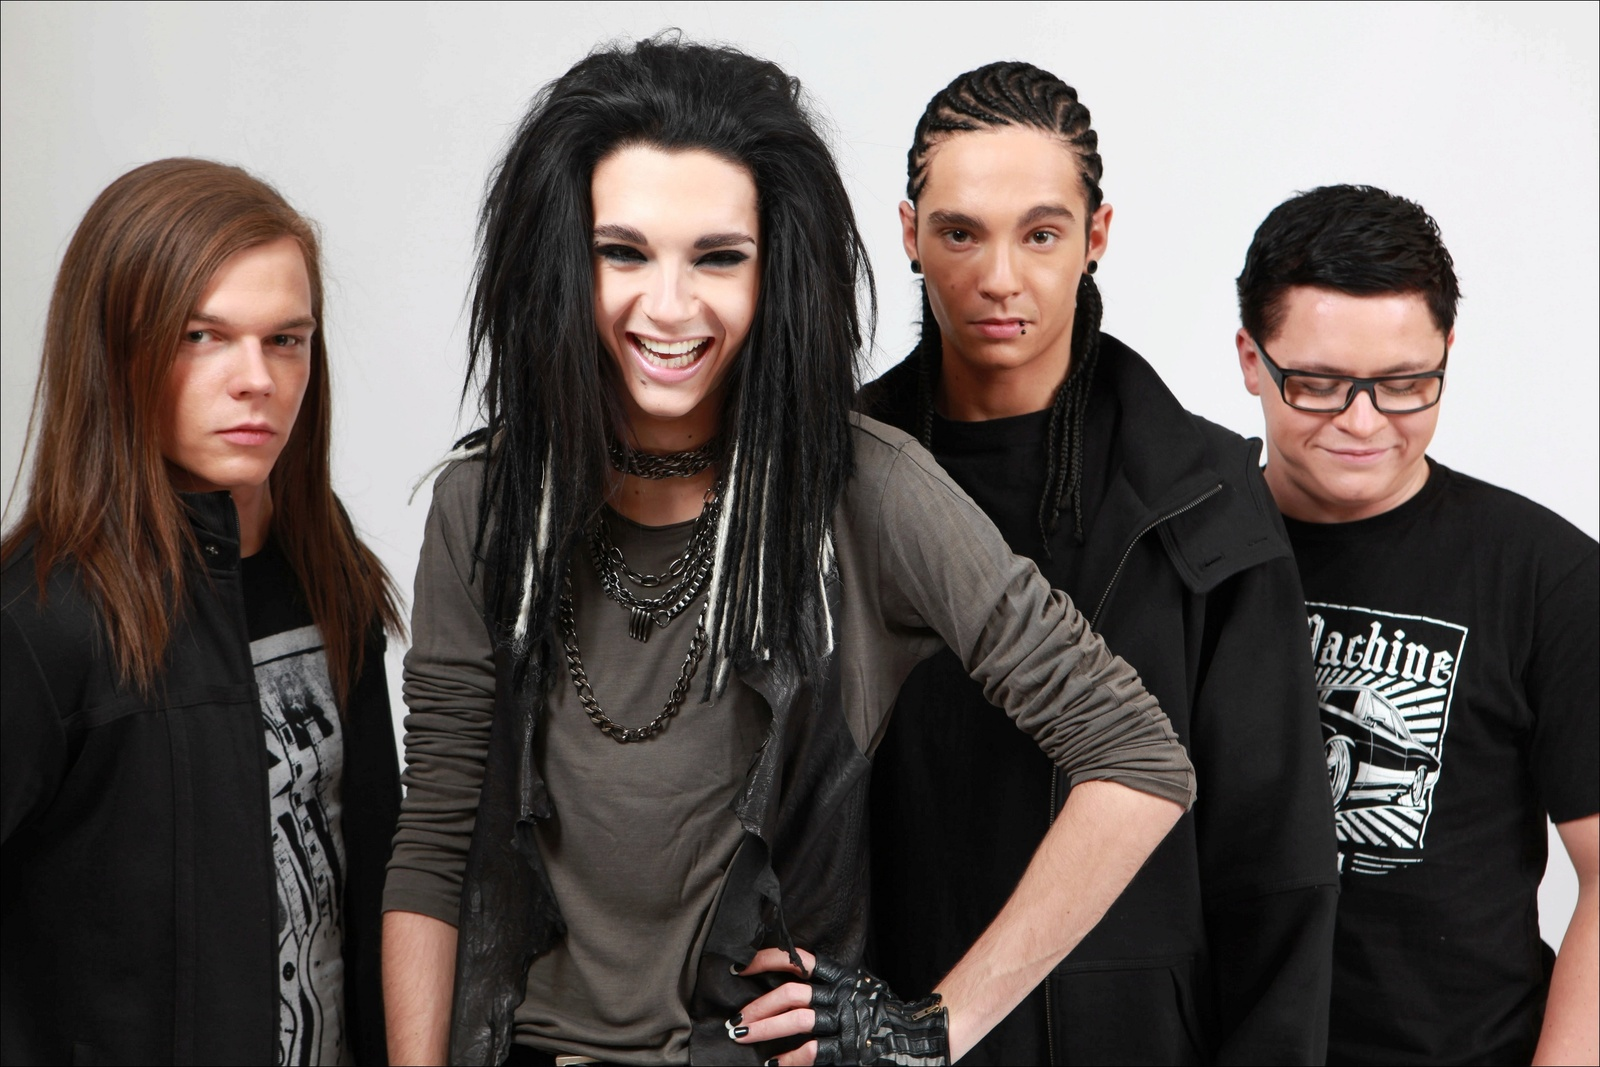 Any requests? Tokio_Hotel_2009_Photoshoot_2_by_belong_to_bill